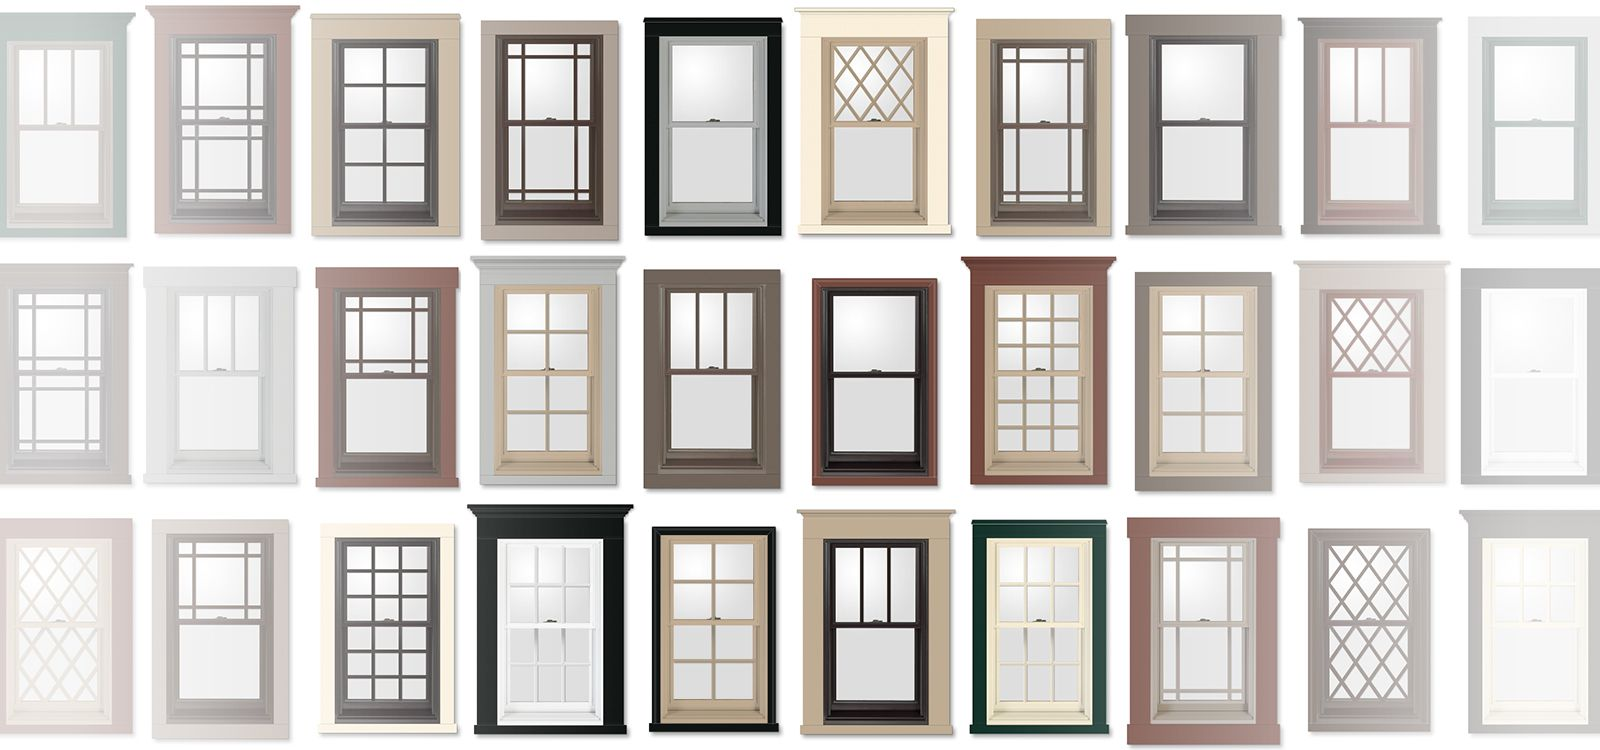 Andersen windows and patio doors 1 in quality and used for House window styles pictures